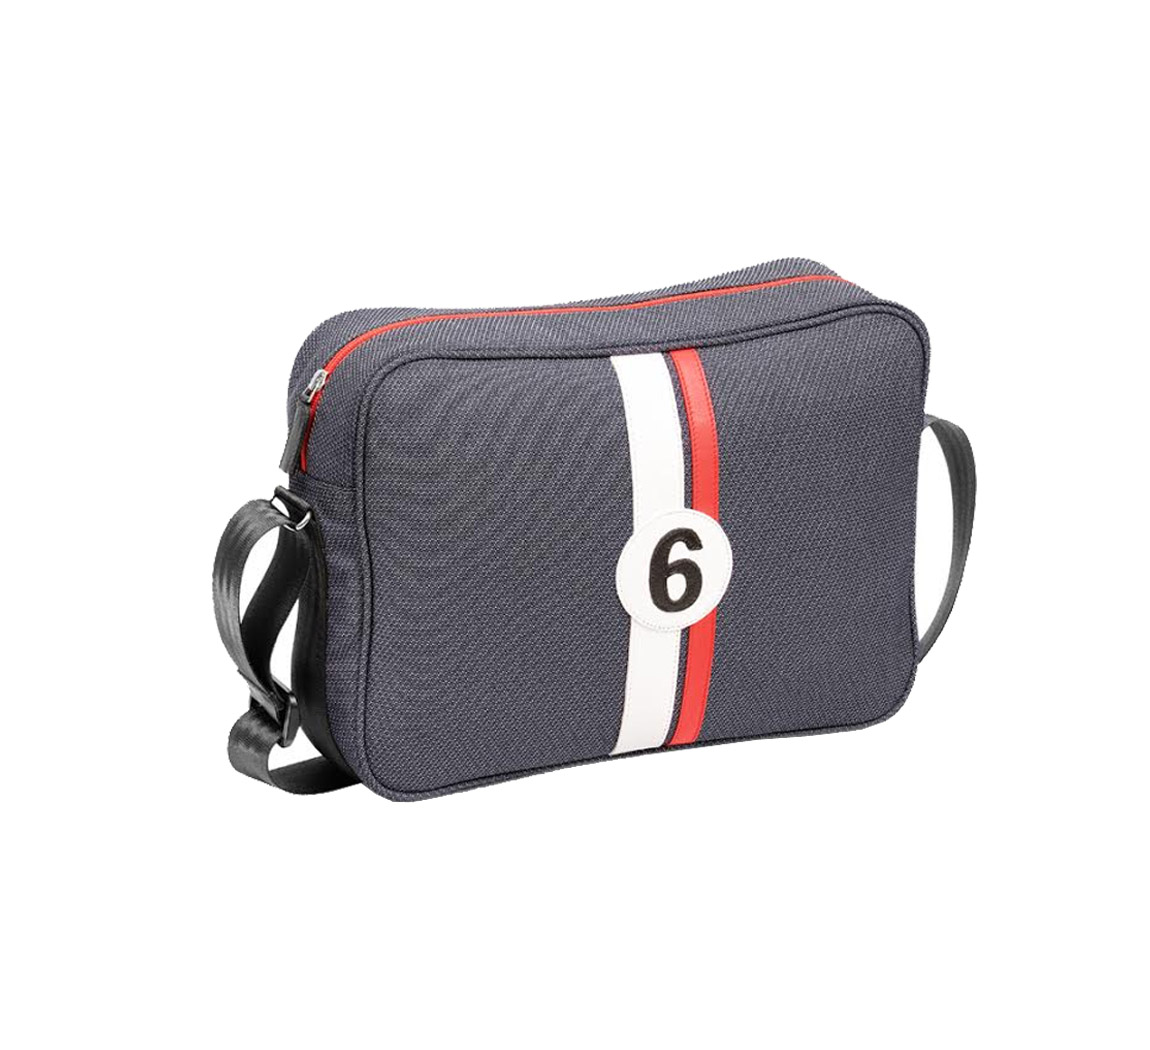 Sac business homme Besace Carlos R6